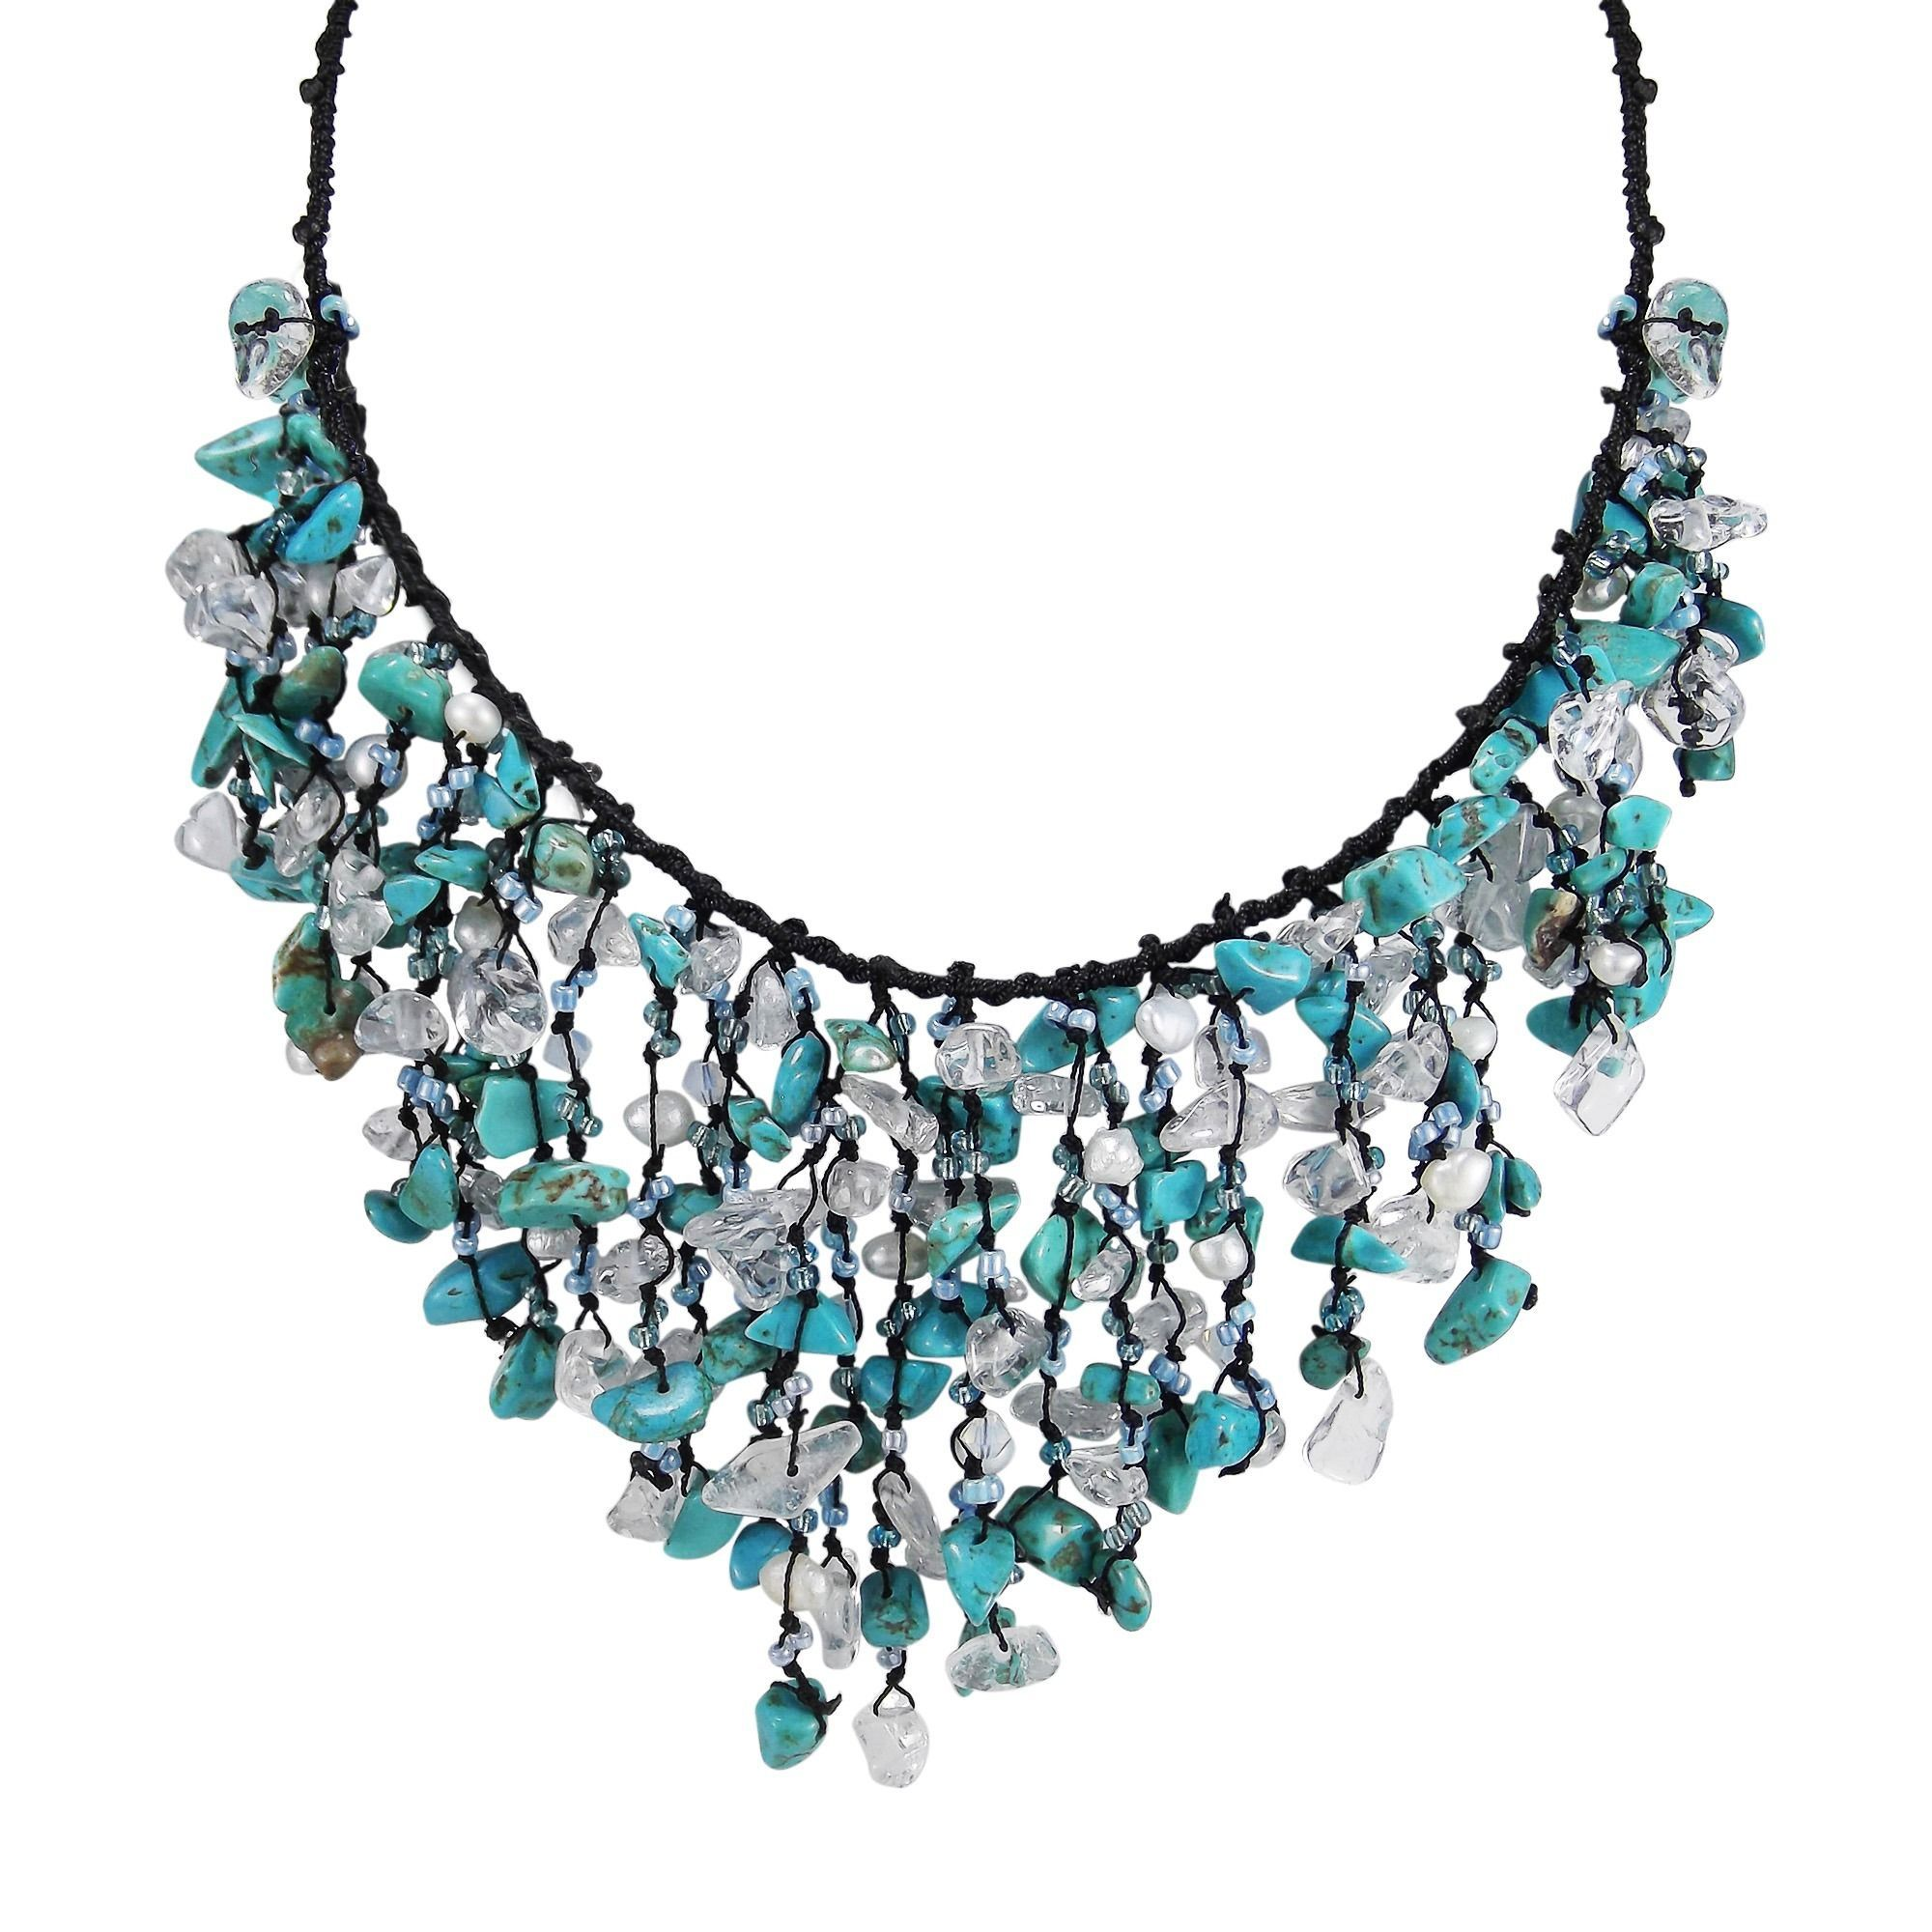 c36afa3cb Adorn yourself with beautiful handmade jewelry from Thailand. This stunning  cotton necklace features hand-beaded clusters of reconstructed turquoise,  ...